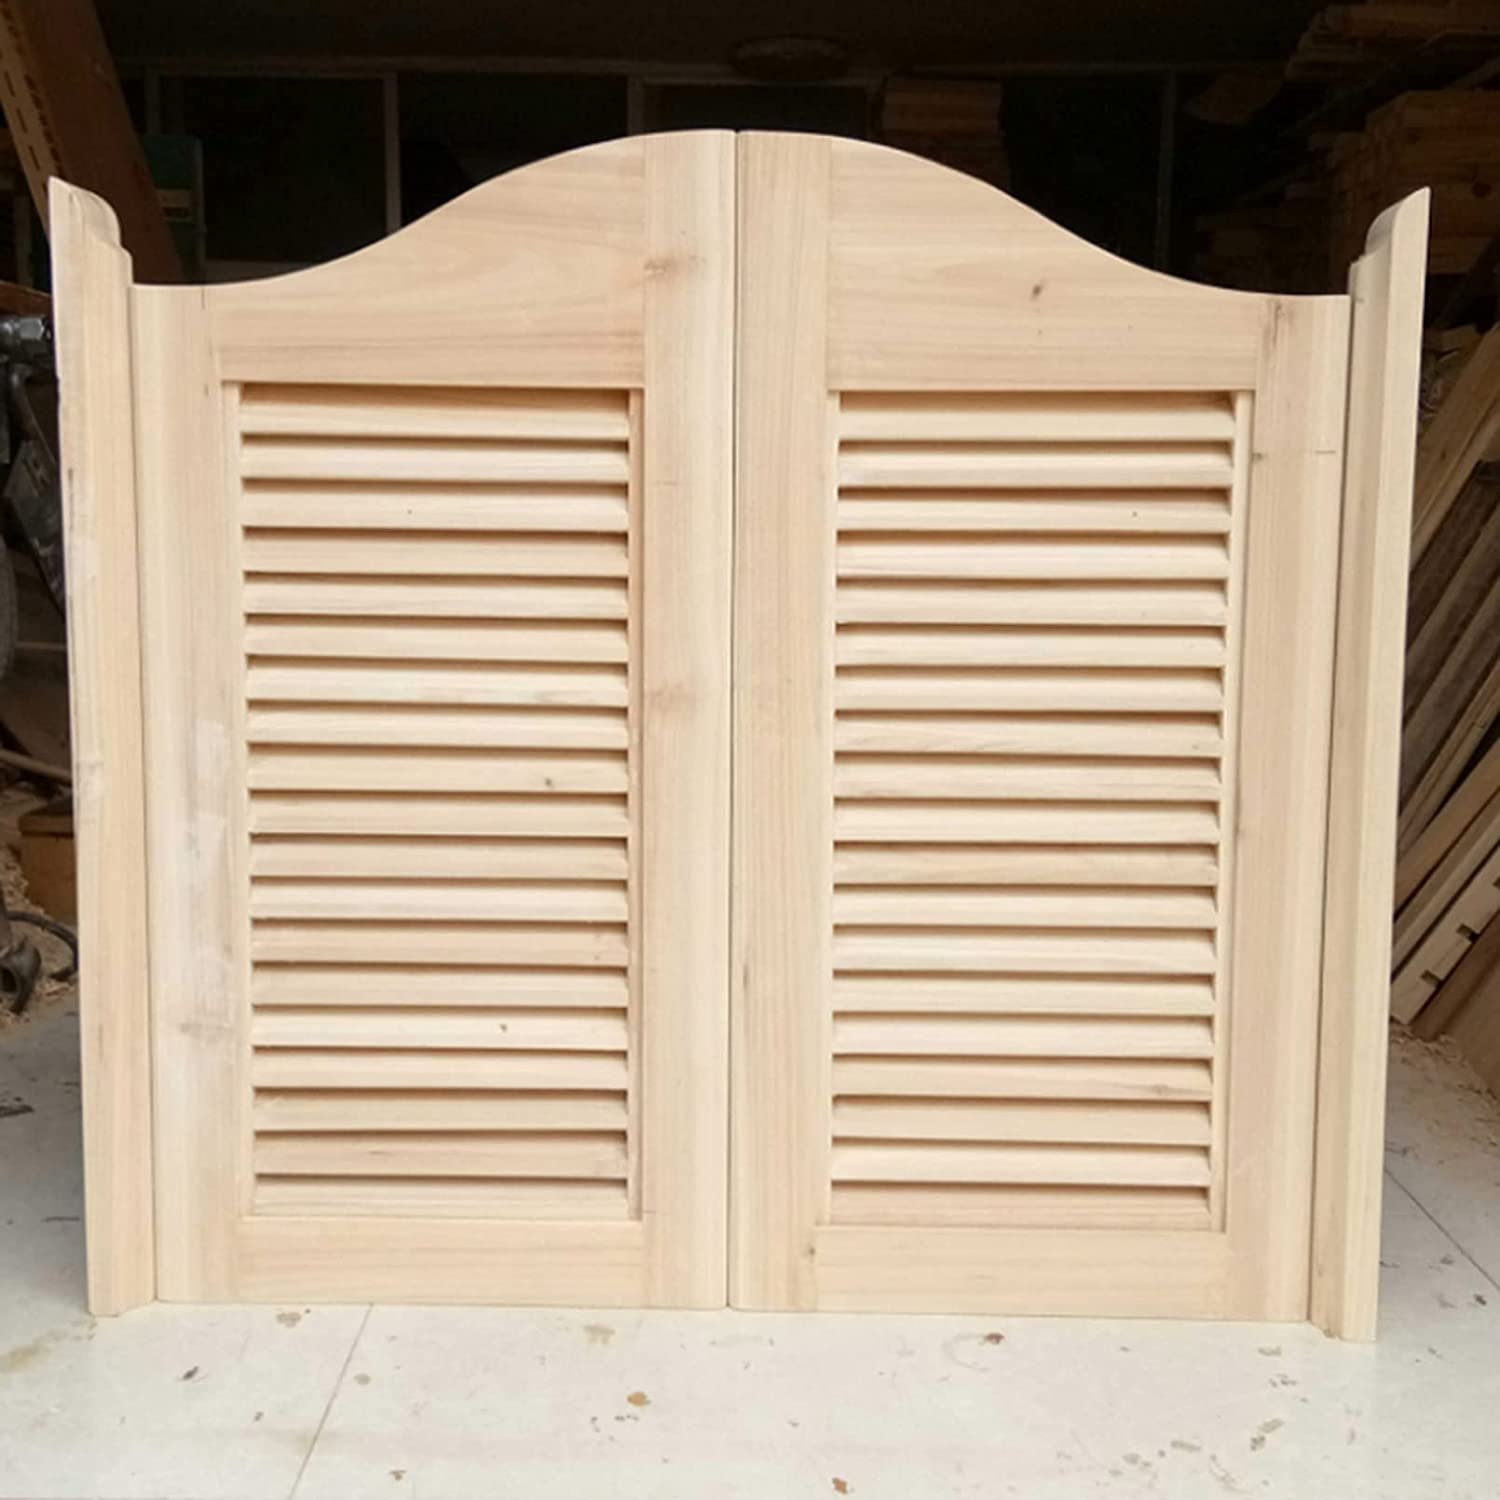 Cafe Swinging Doors Unfinished Louvered Bar Bombing free shipping Sales for sale Wooden Saloon Cowboy